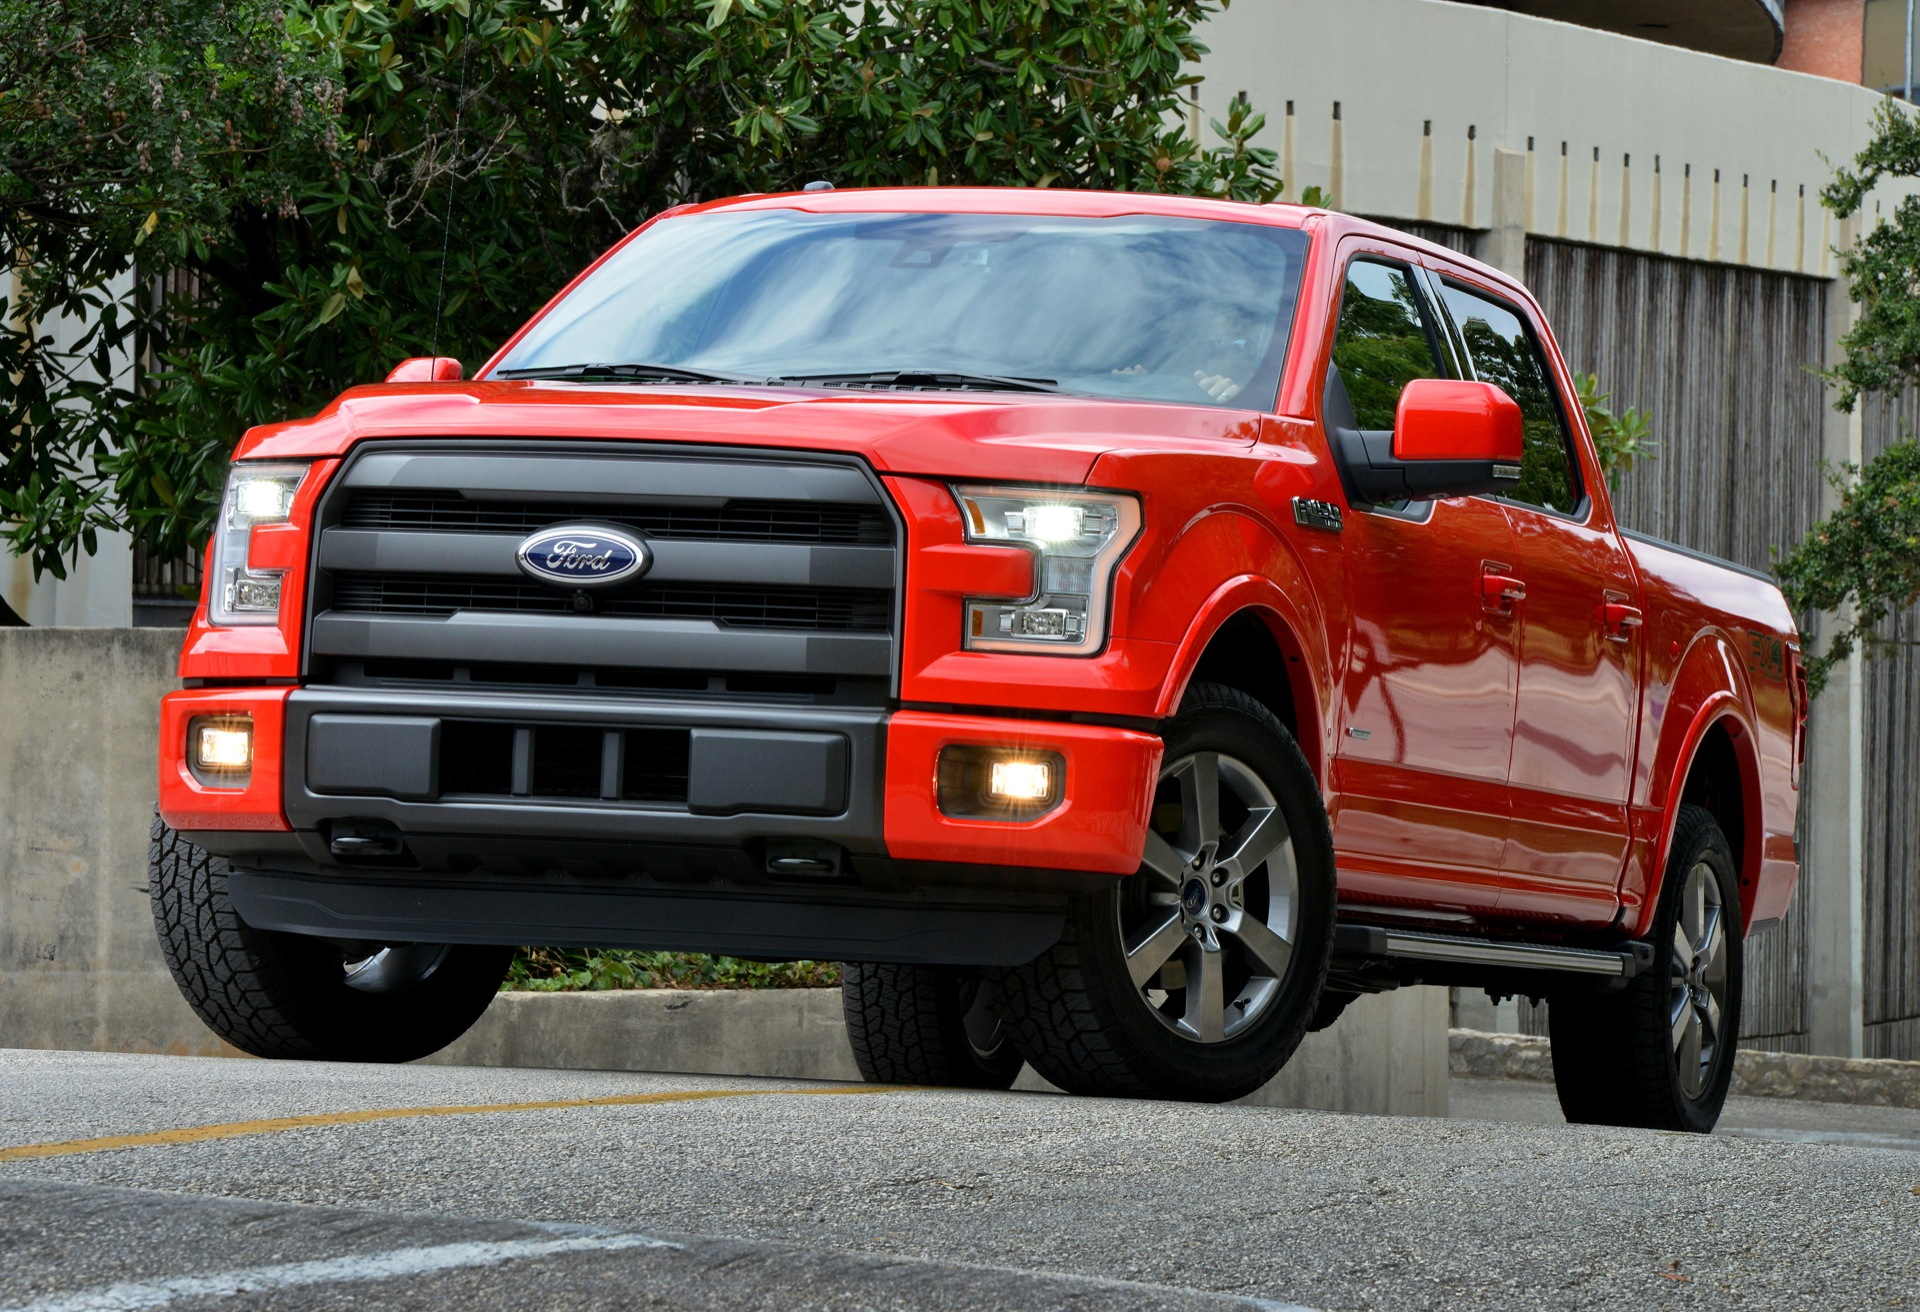 Fords Electric Vehicle Strategy Absorb Costs In Most Profitable Trucks